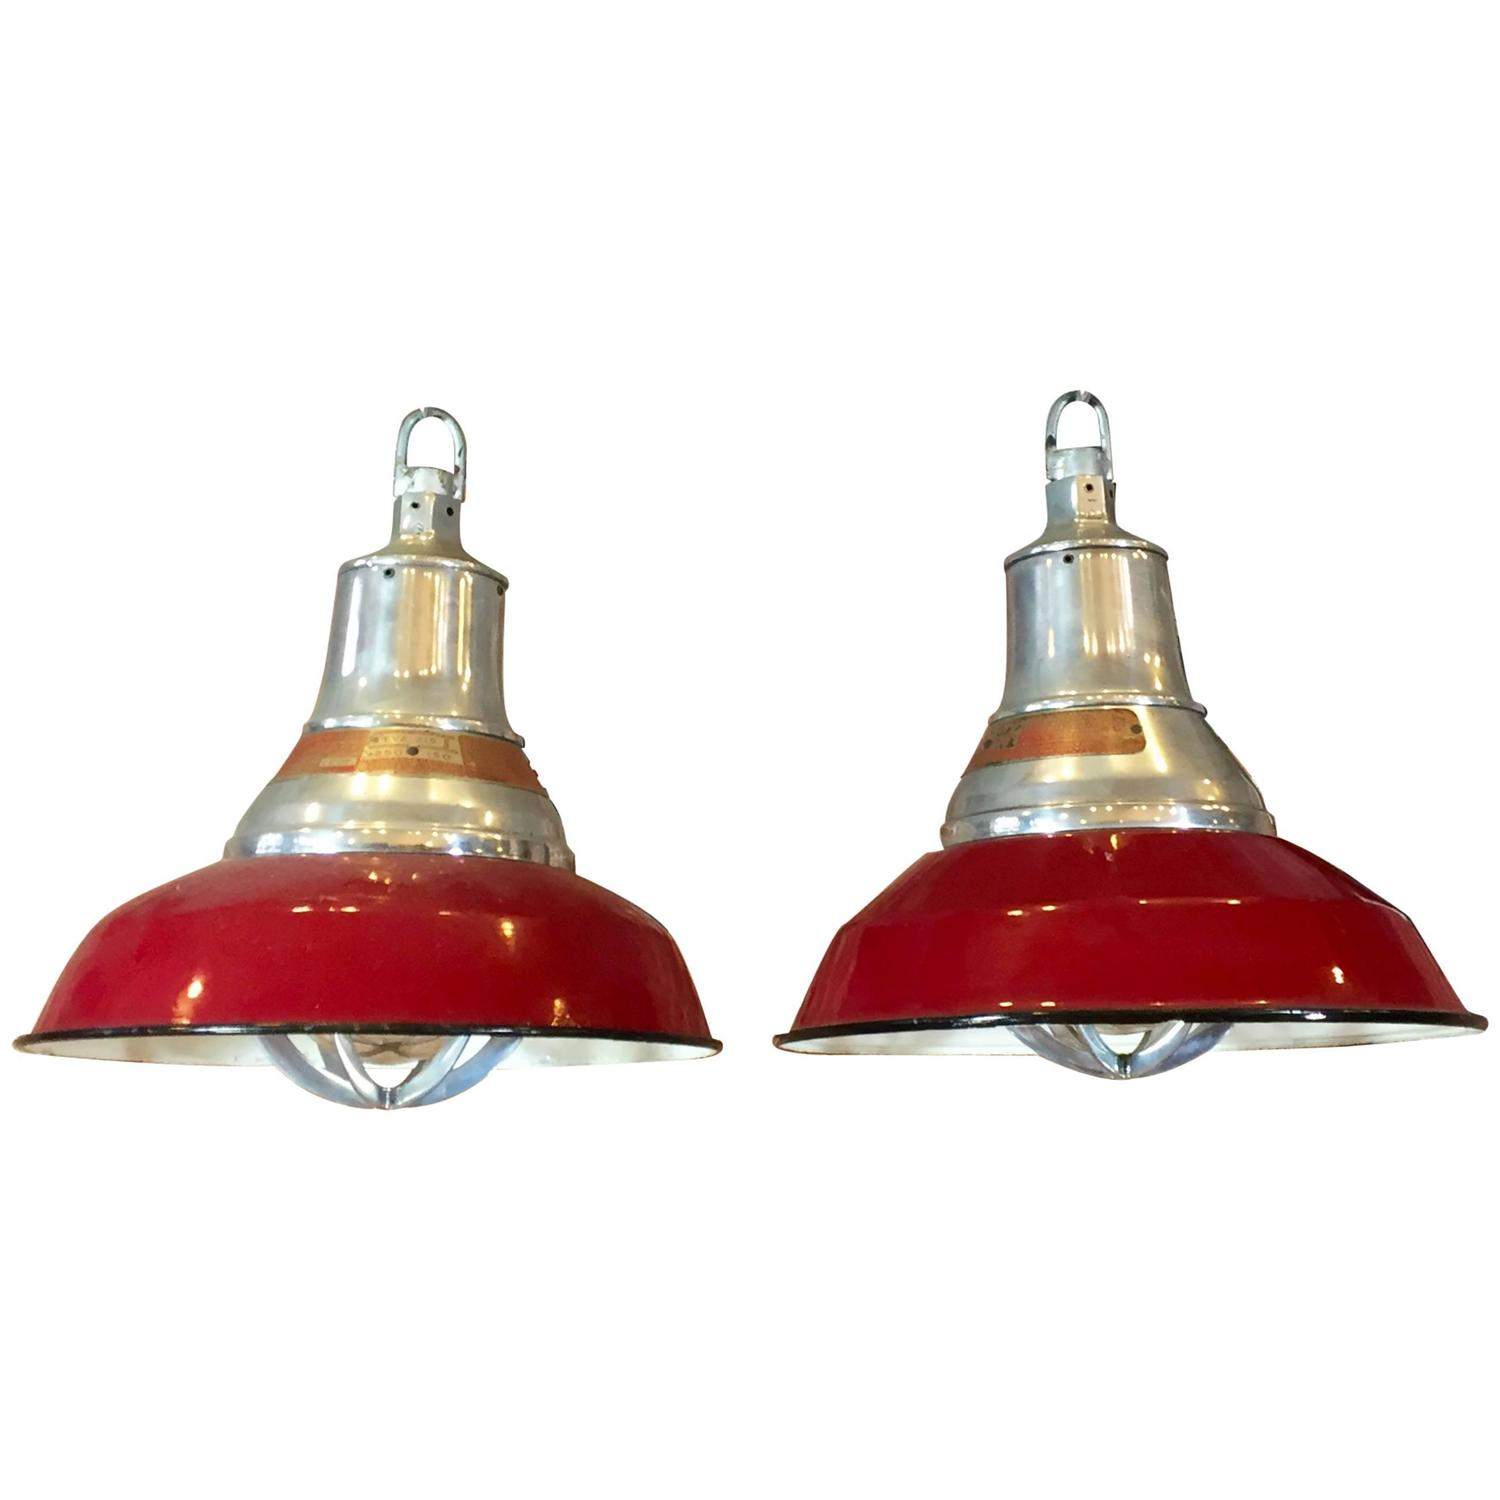 Crouse hinds explosion proof pendant lights at 1stdibs arubaitofo Choice Image